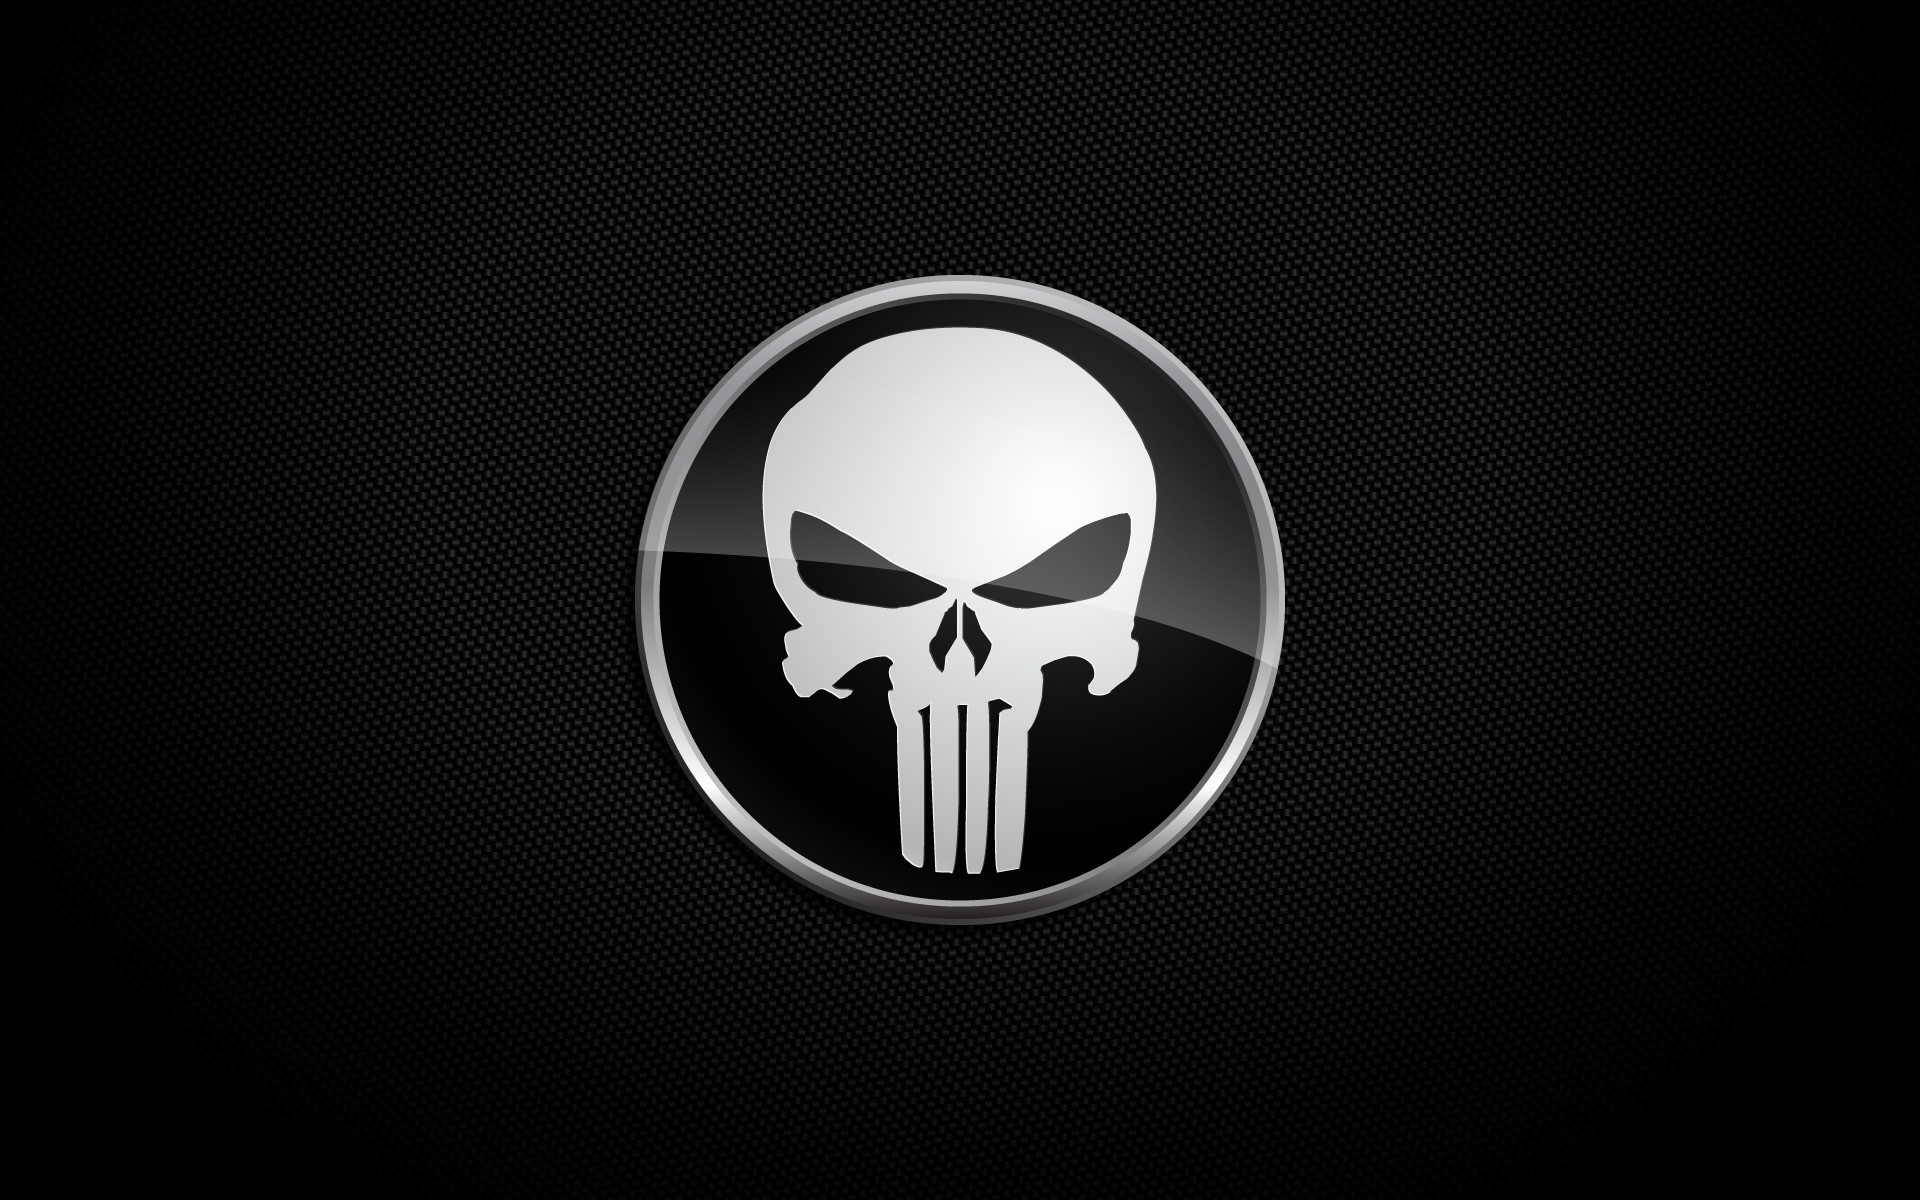 46 Punisher HD Wallpapers/Backgrounds For Free Download, BsnSCB ...